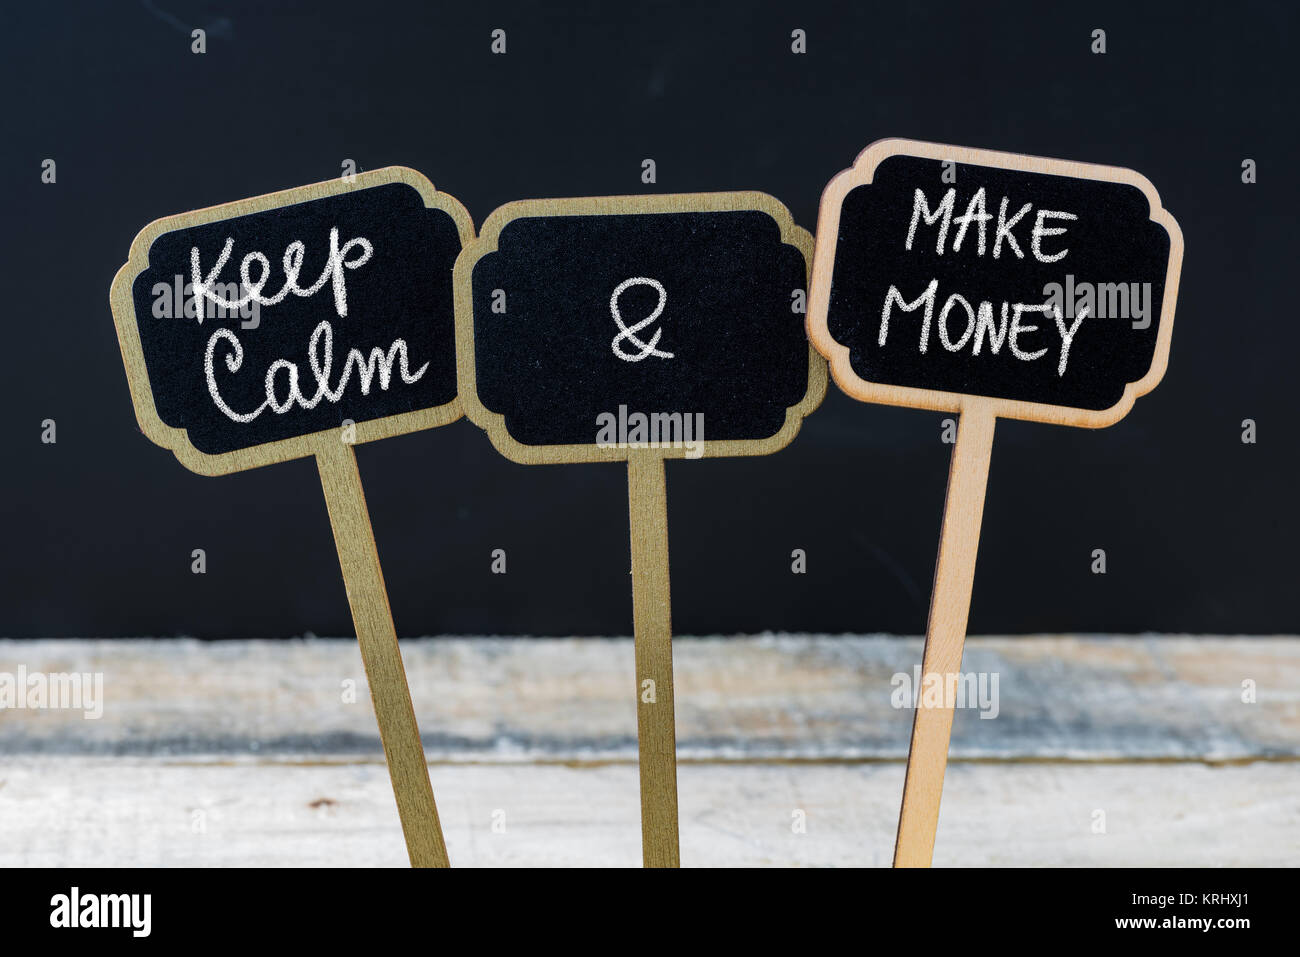 Keep Calm and Make Money message written with chalk on mini blackboard labels - Stock Image